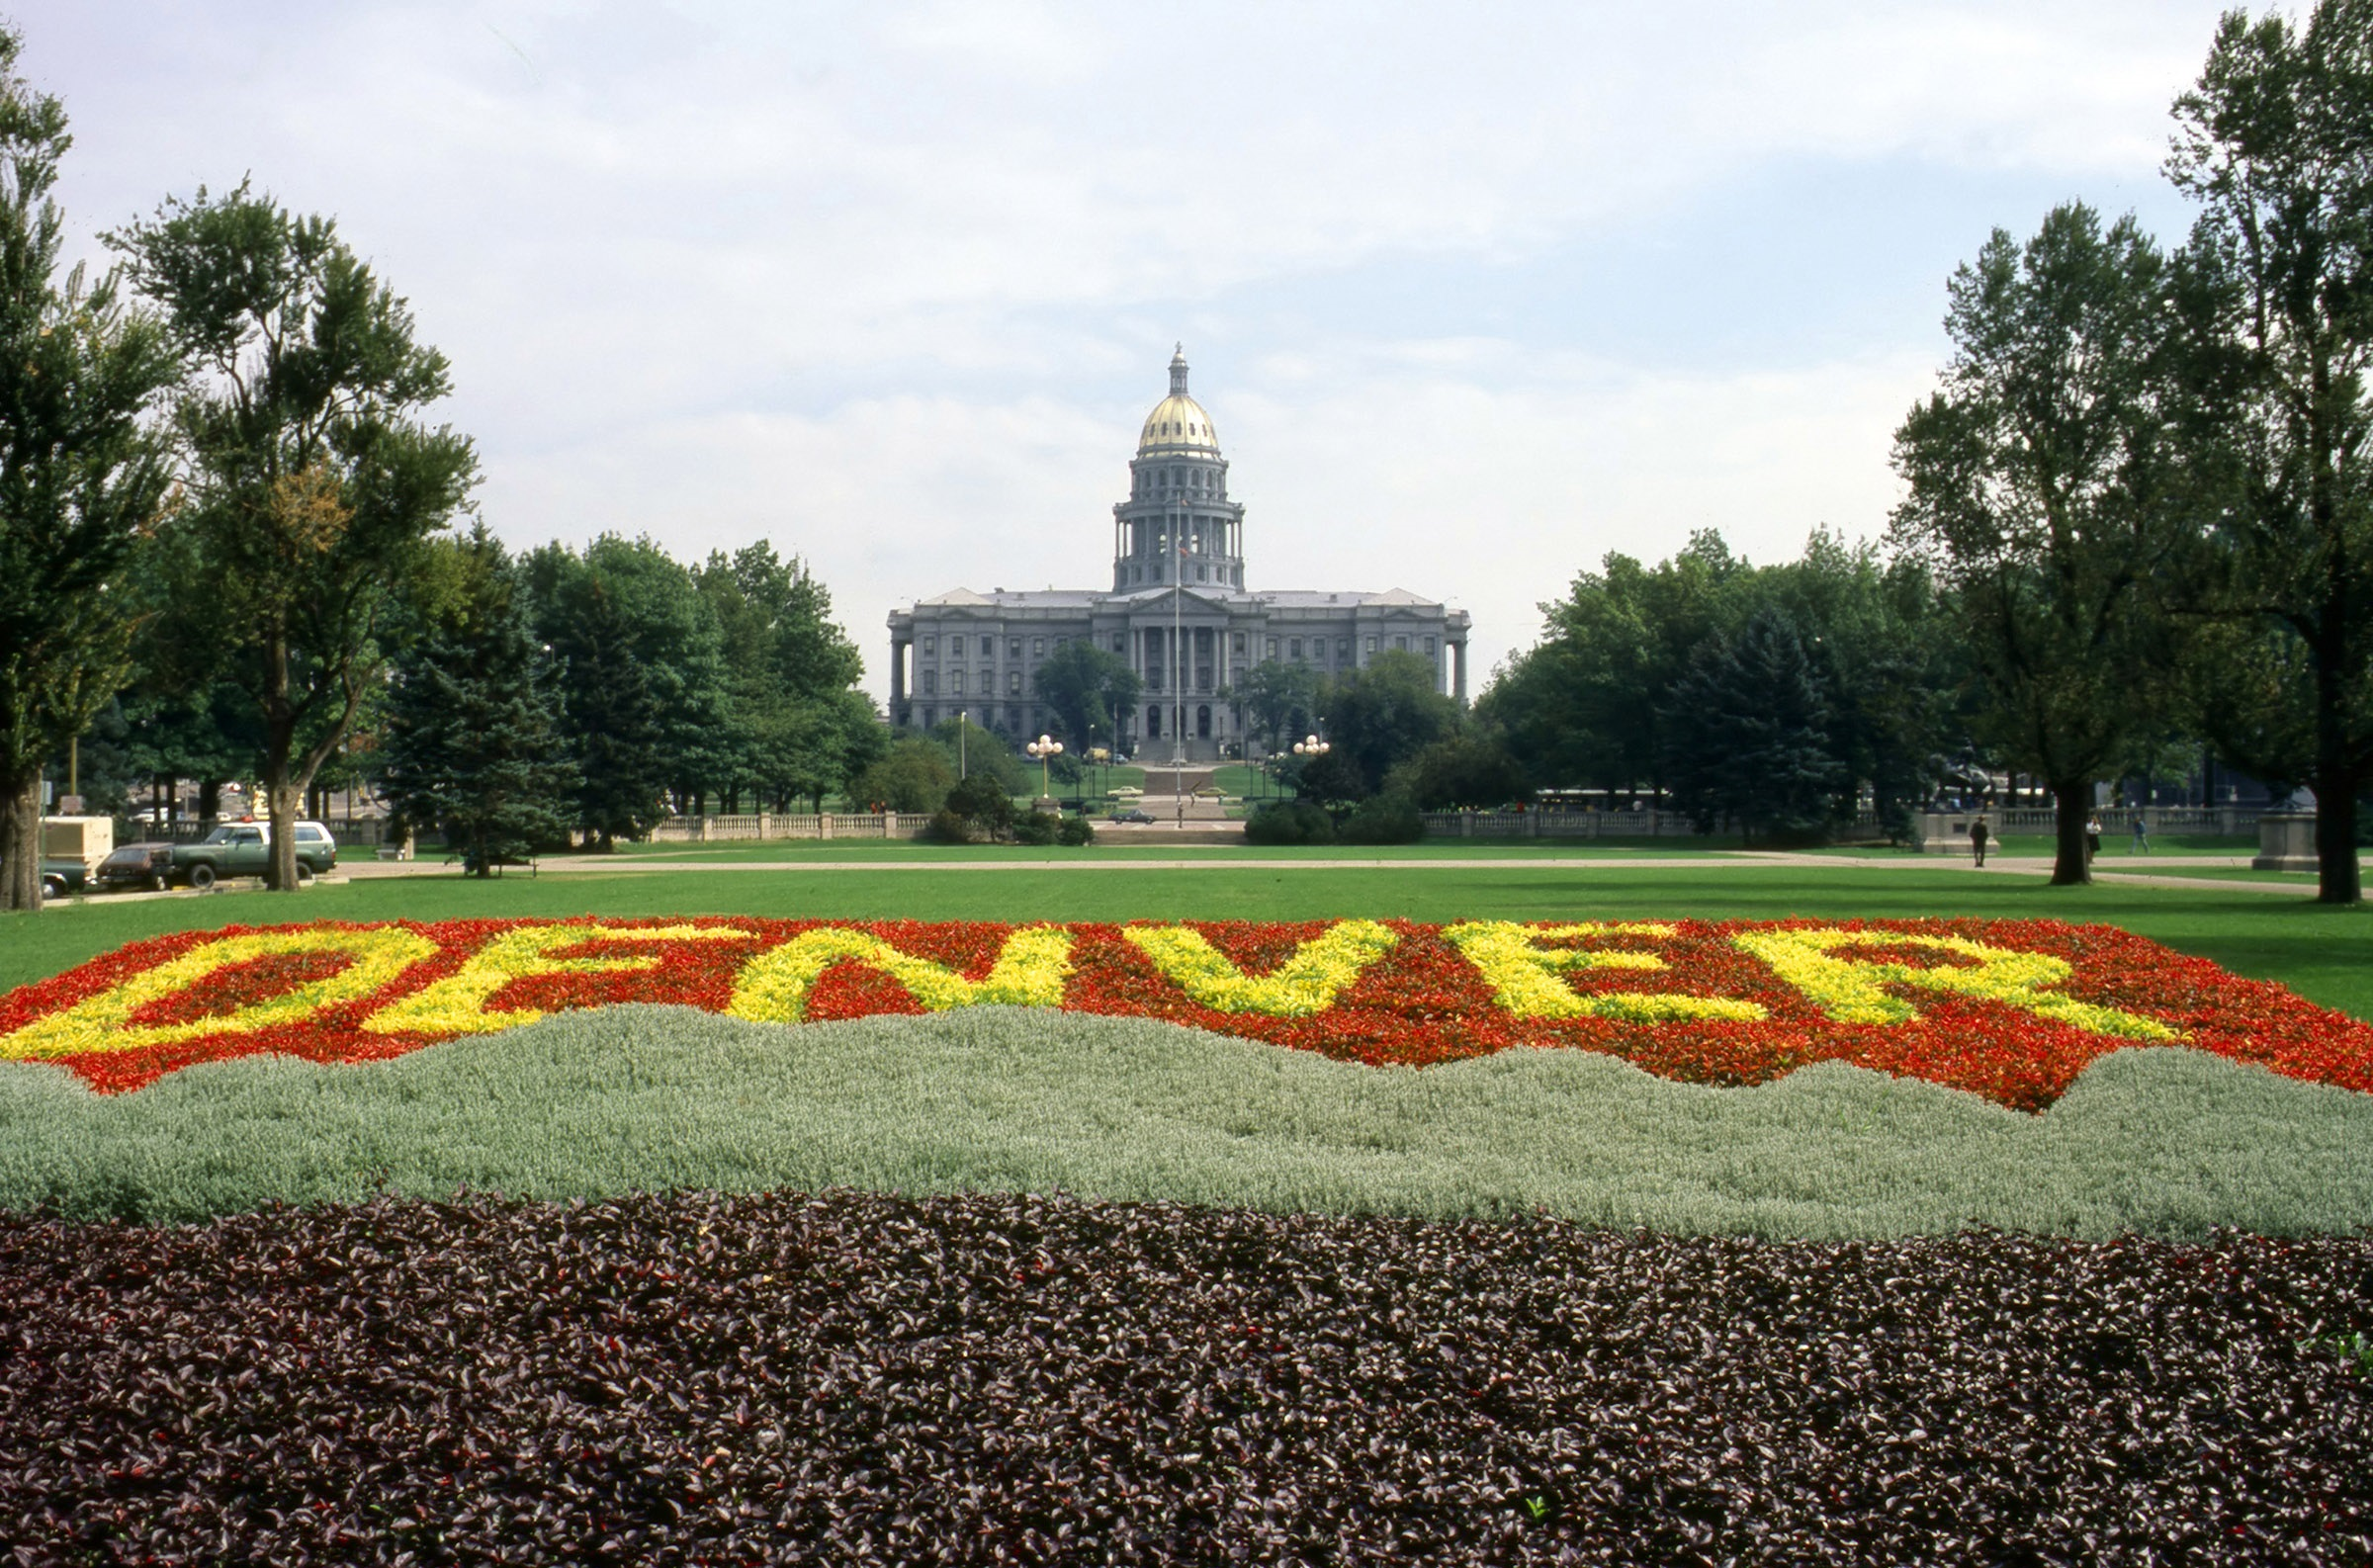 A colorful field of flowers in front of the State Capitol.